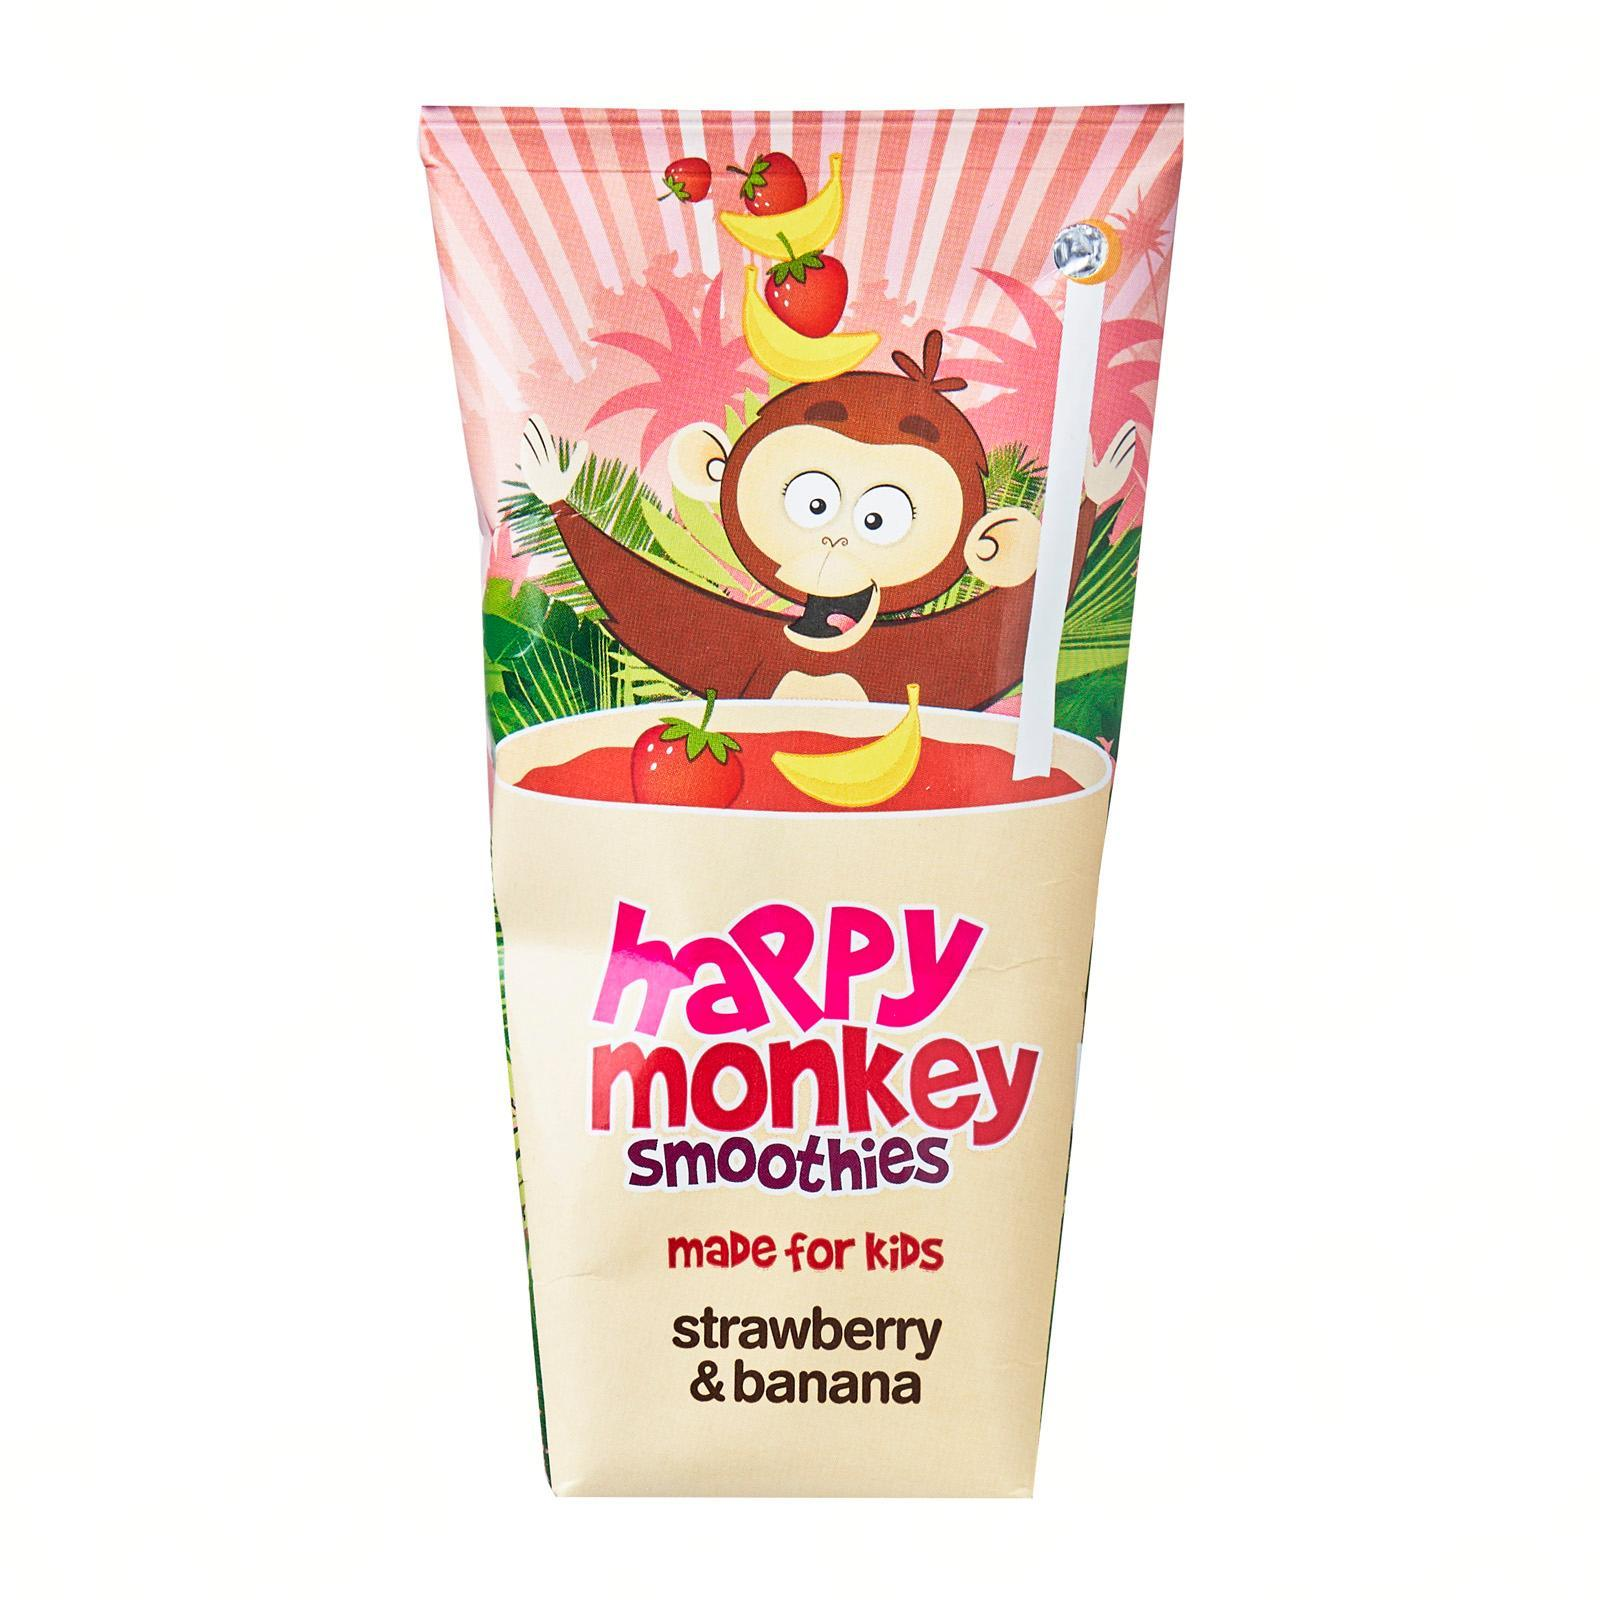 HAPPY MONKEY 100-Percent Fruit Smoothies - Made for Kids - Strawberry Banana